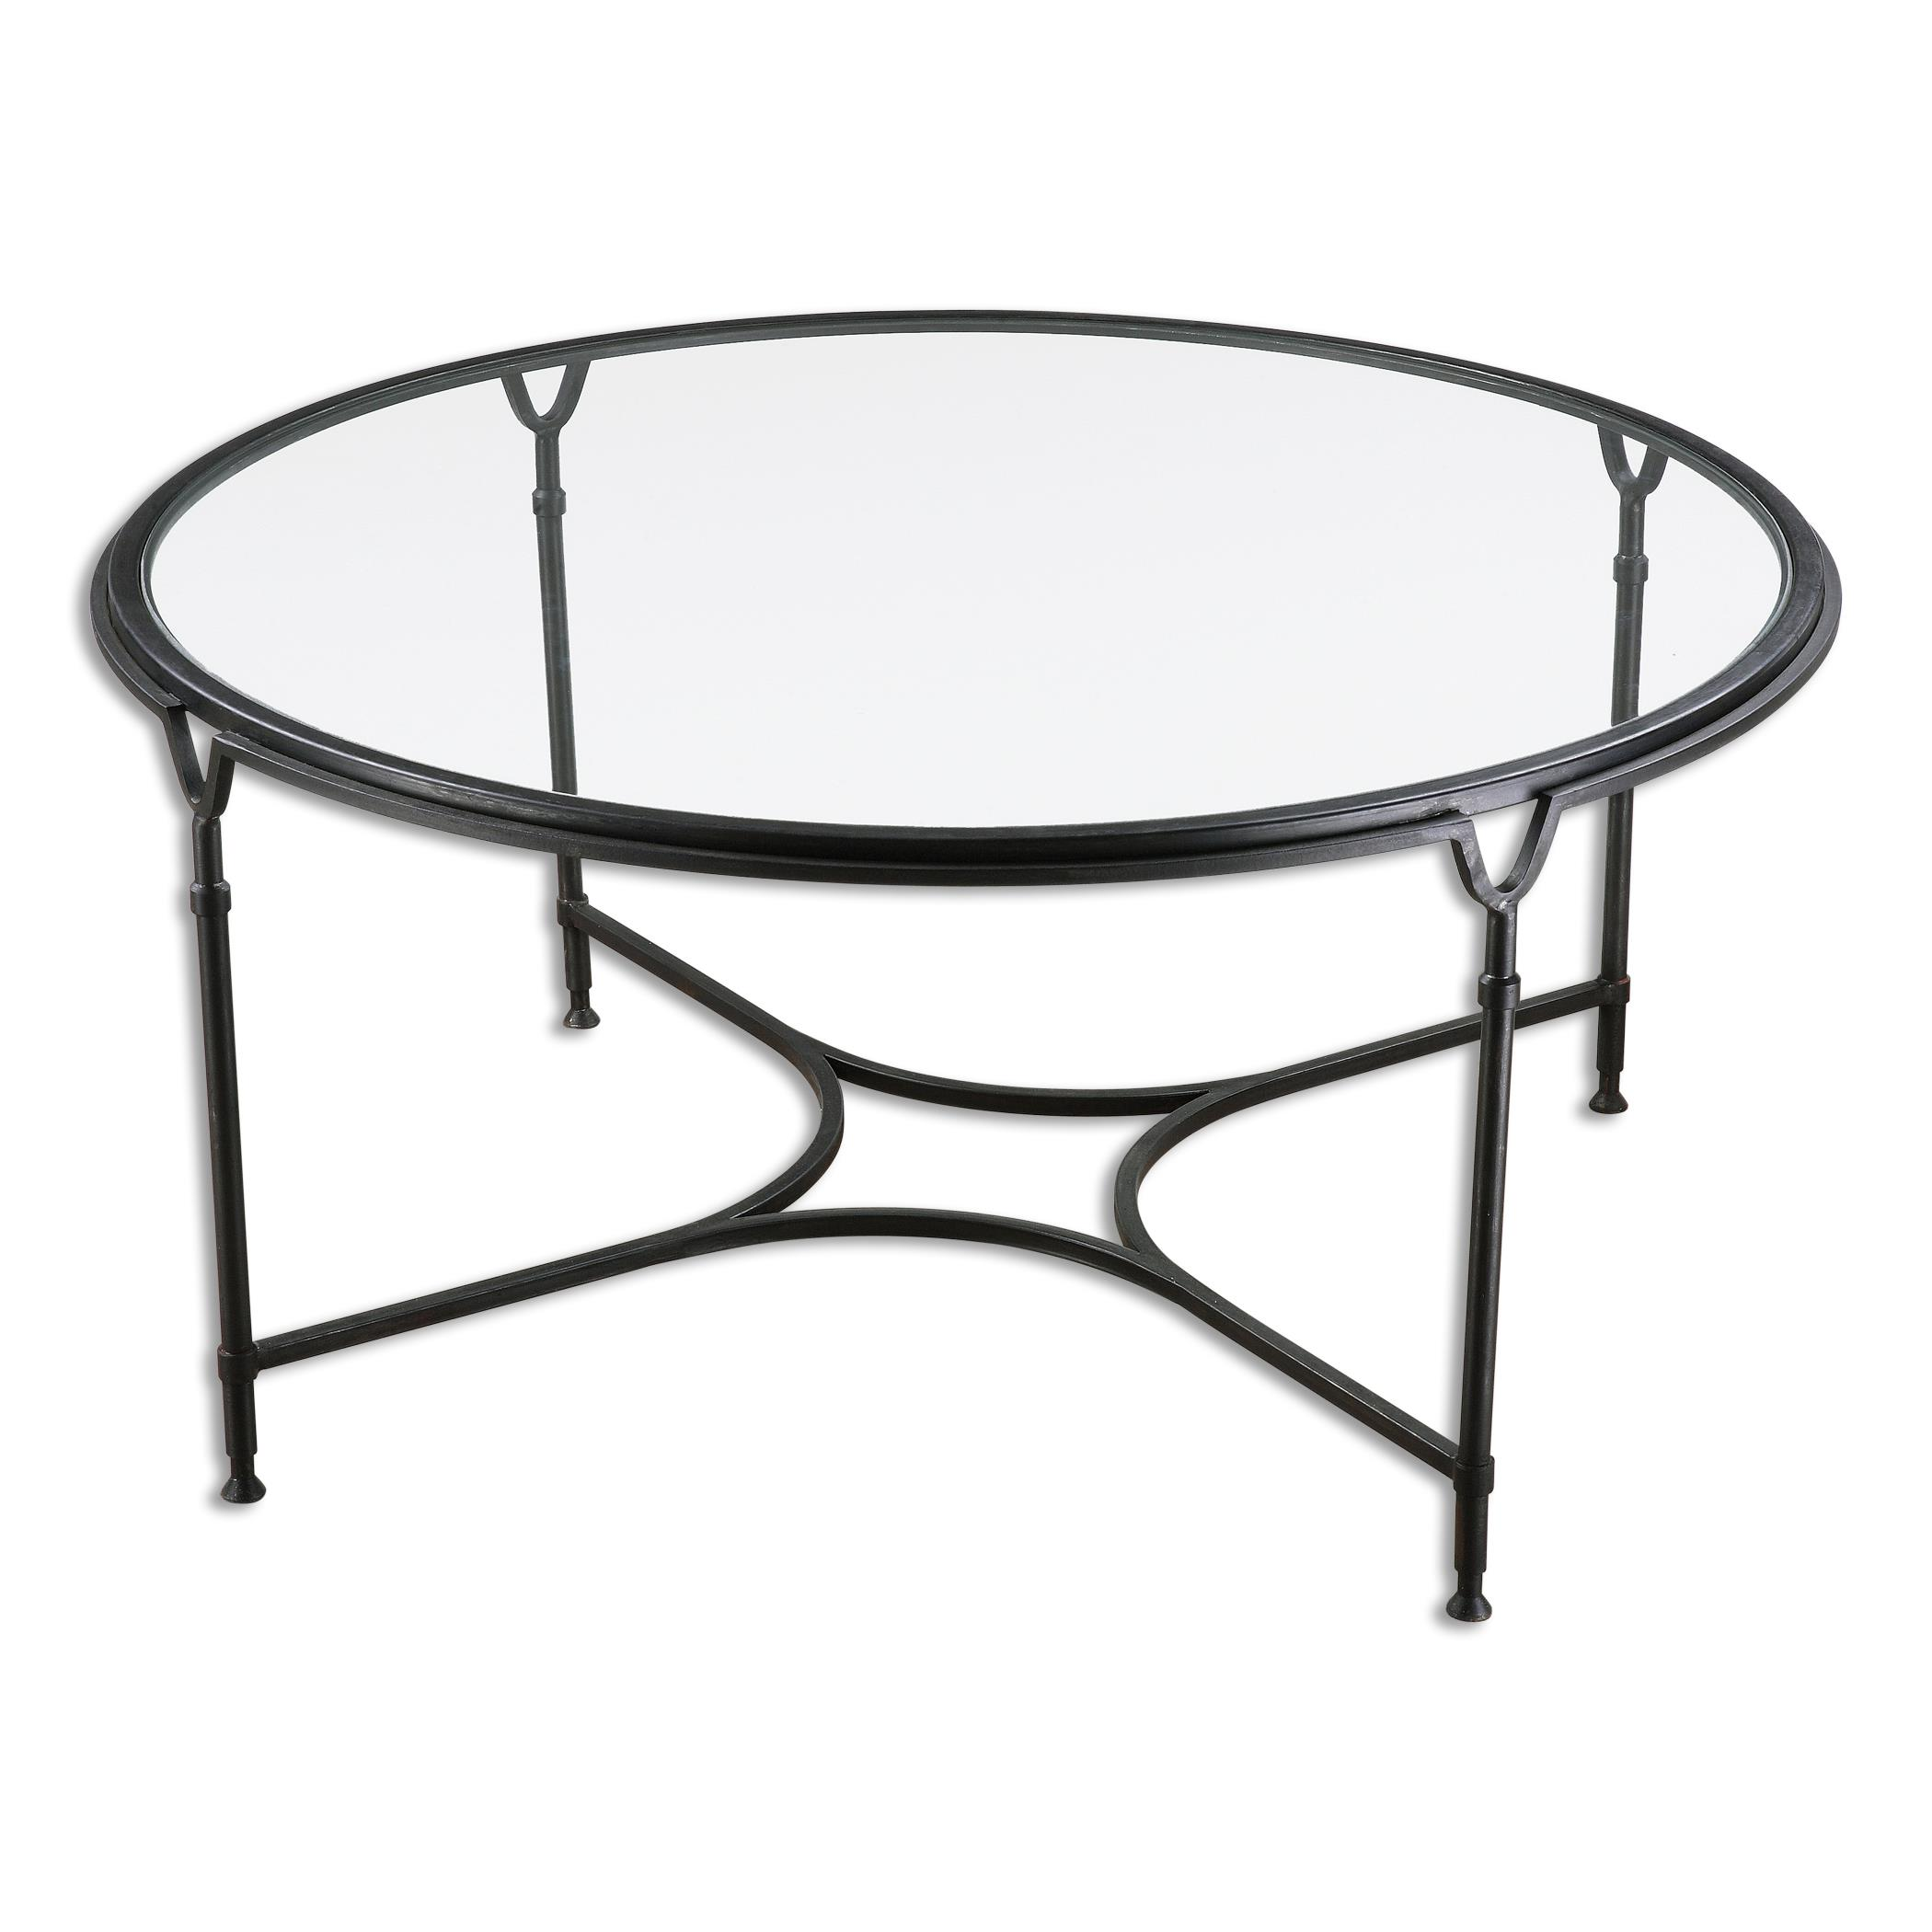 Uttermost Accent Furniture Samson Glass Coffee Table - Item Number: 24468